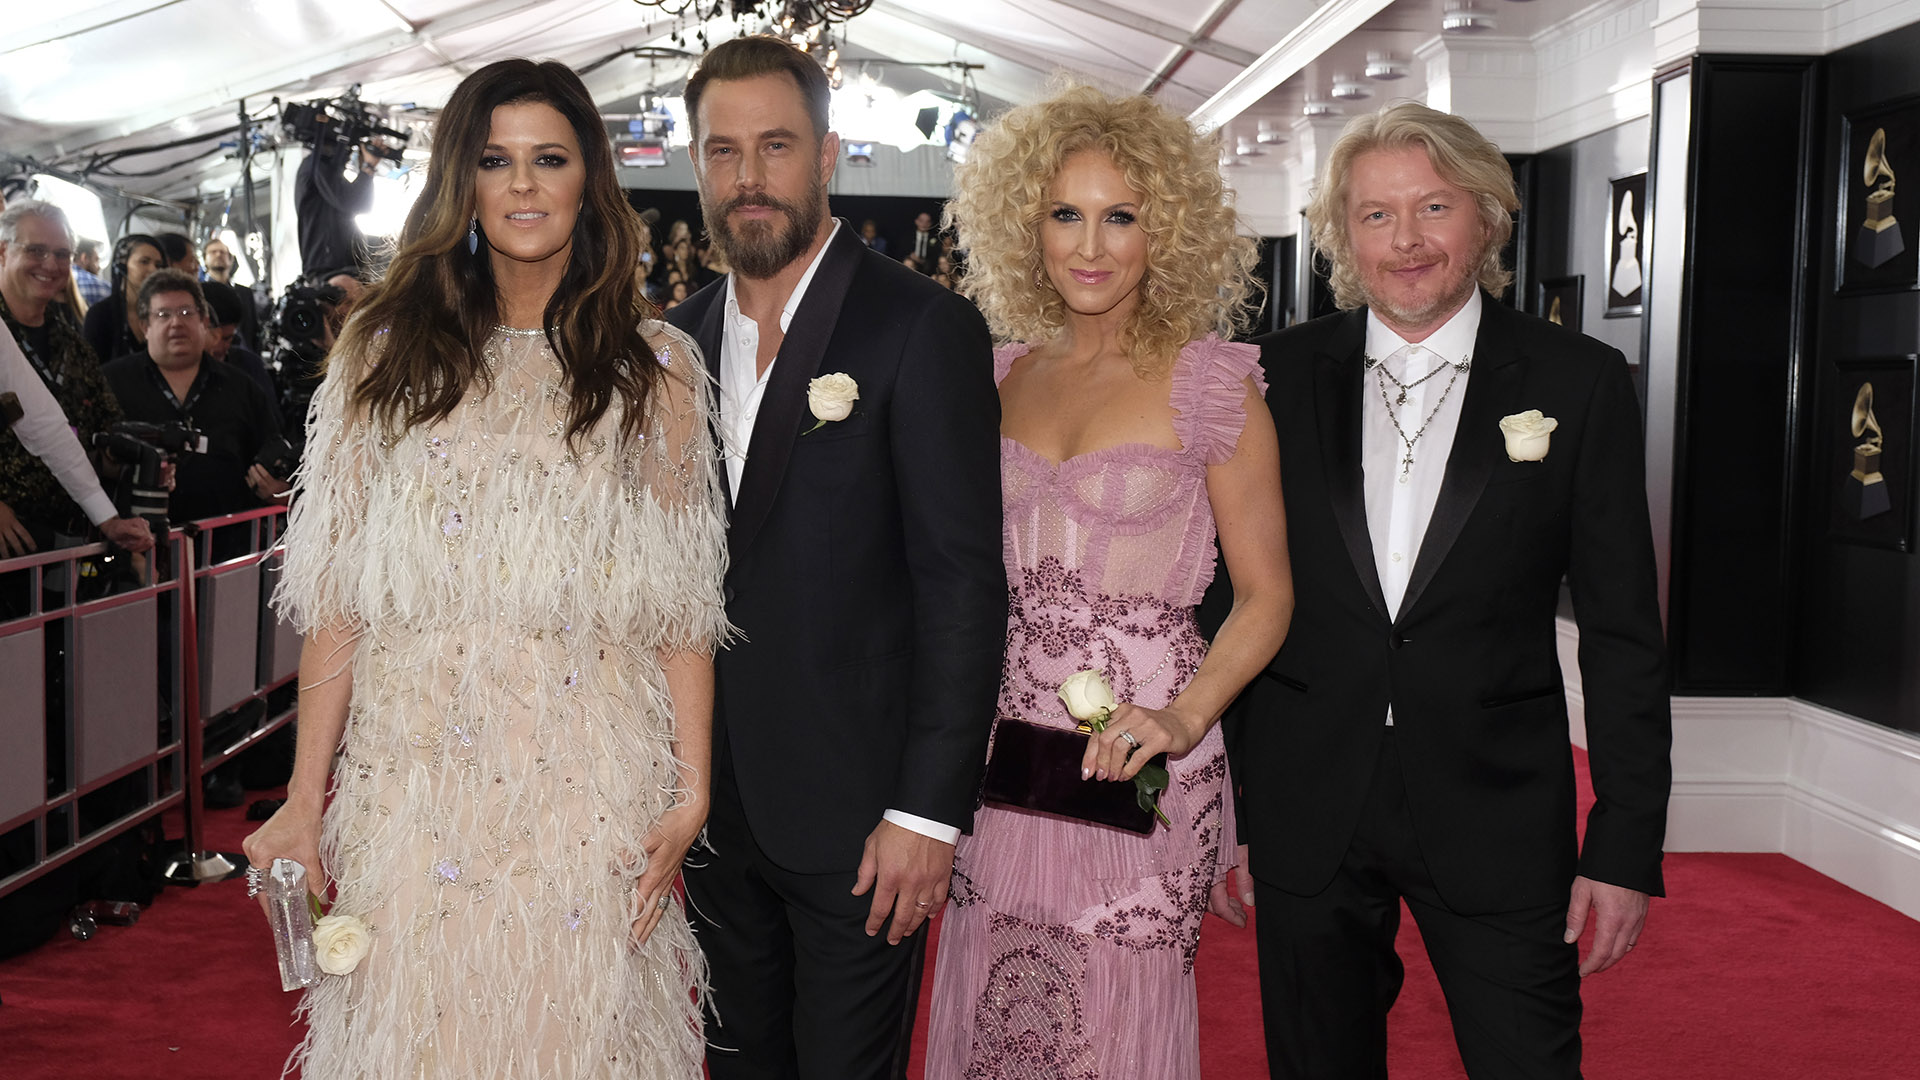 There's nothing small about Little Big Town's trend-setting fashion statement on the GRAMMY red carpet.